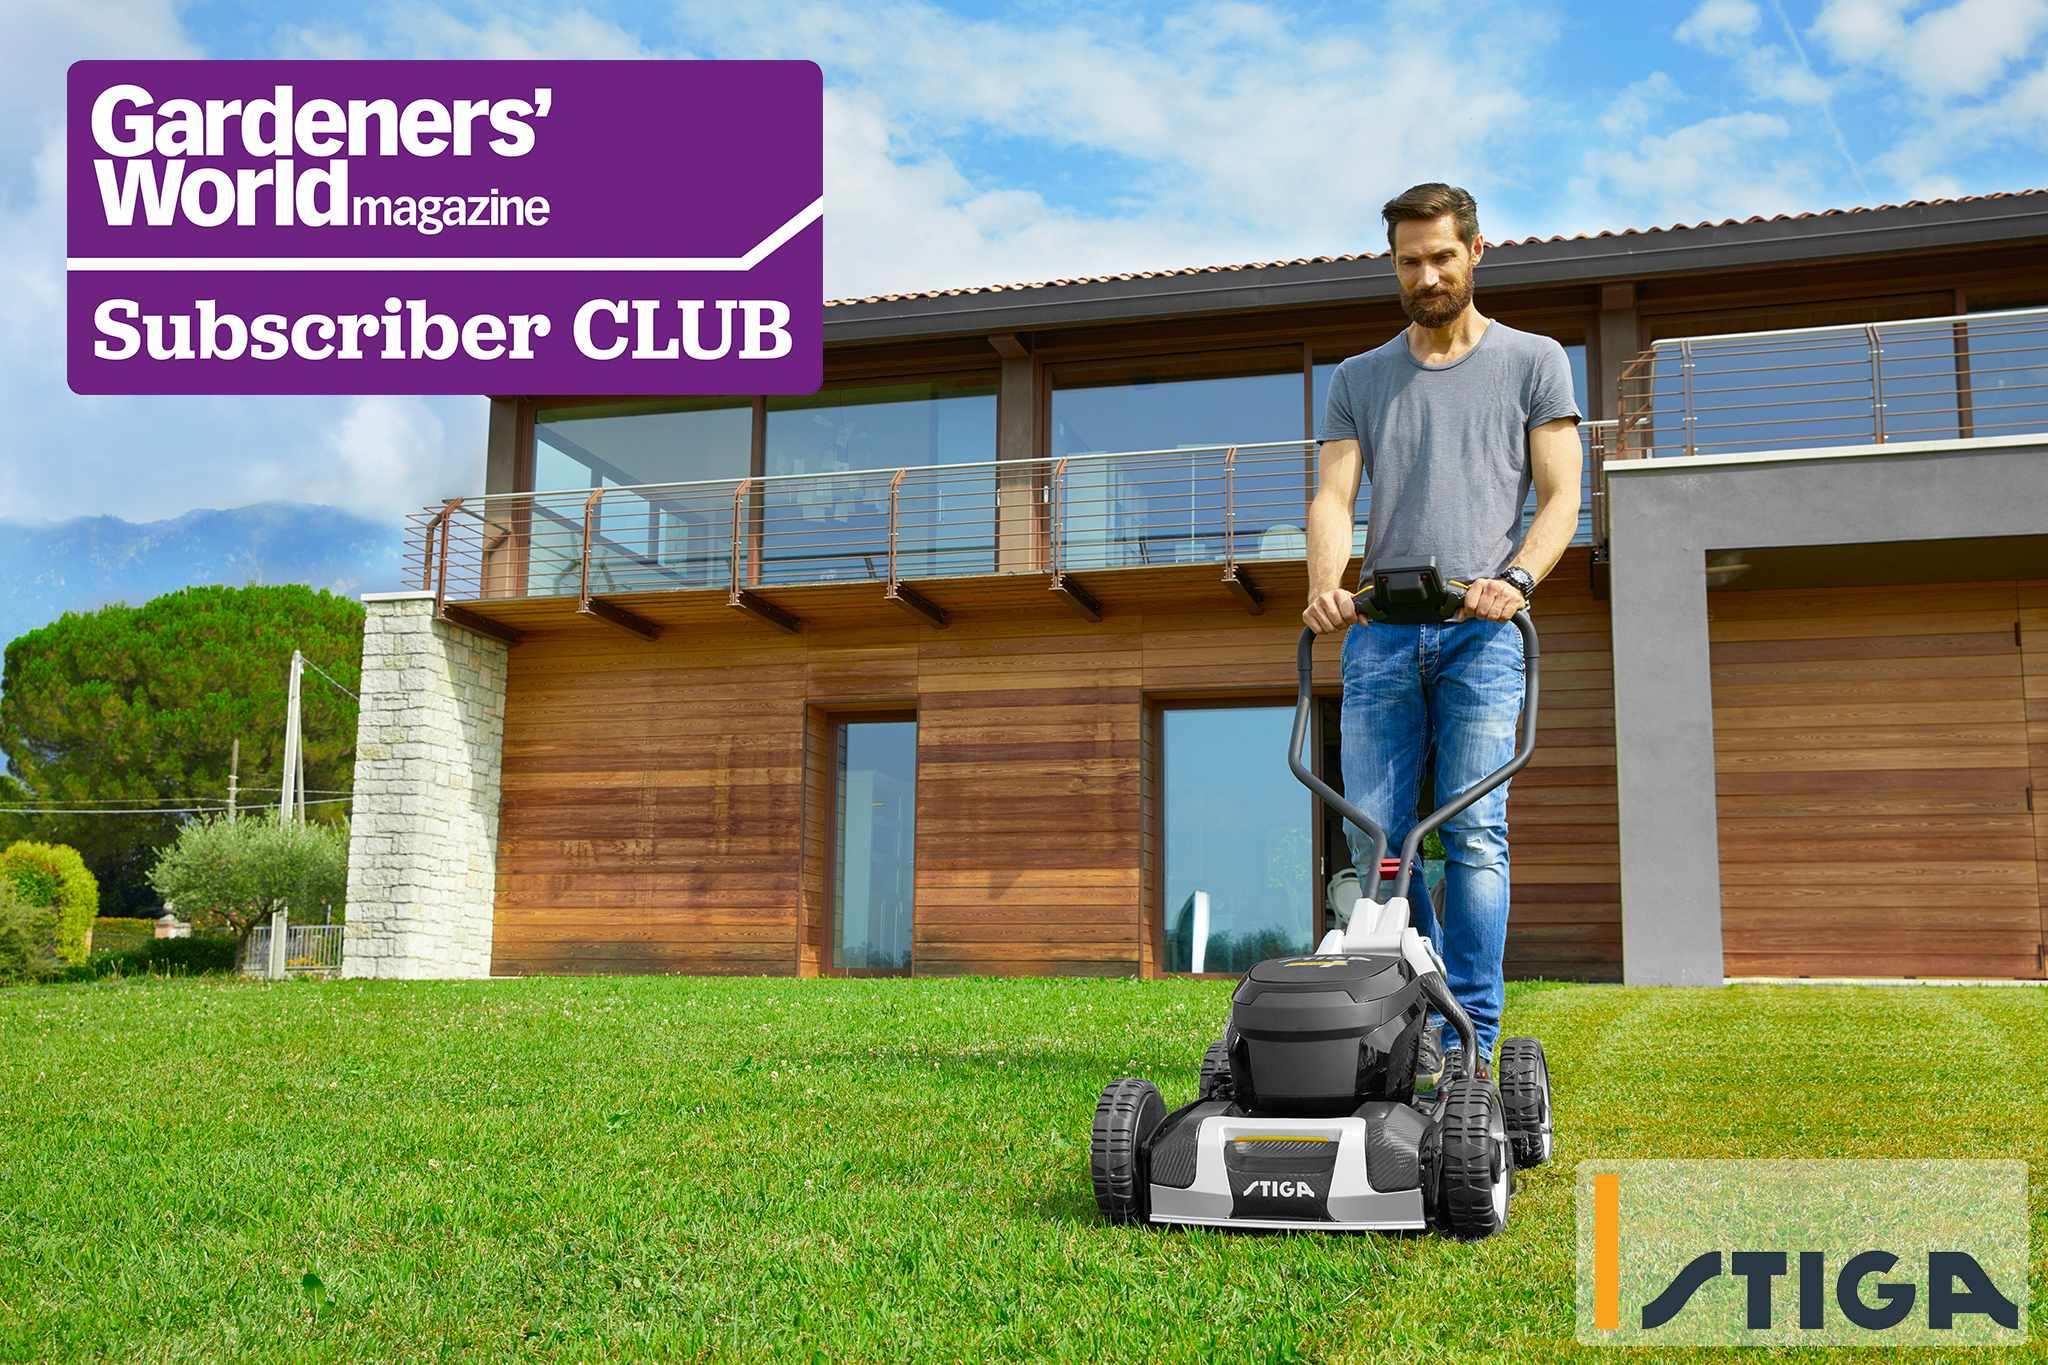 Subscriber Club: Win a battery-powered Stiga lawnmower, worth £2,999